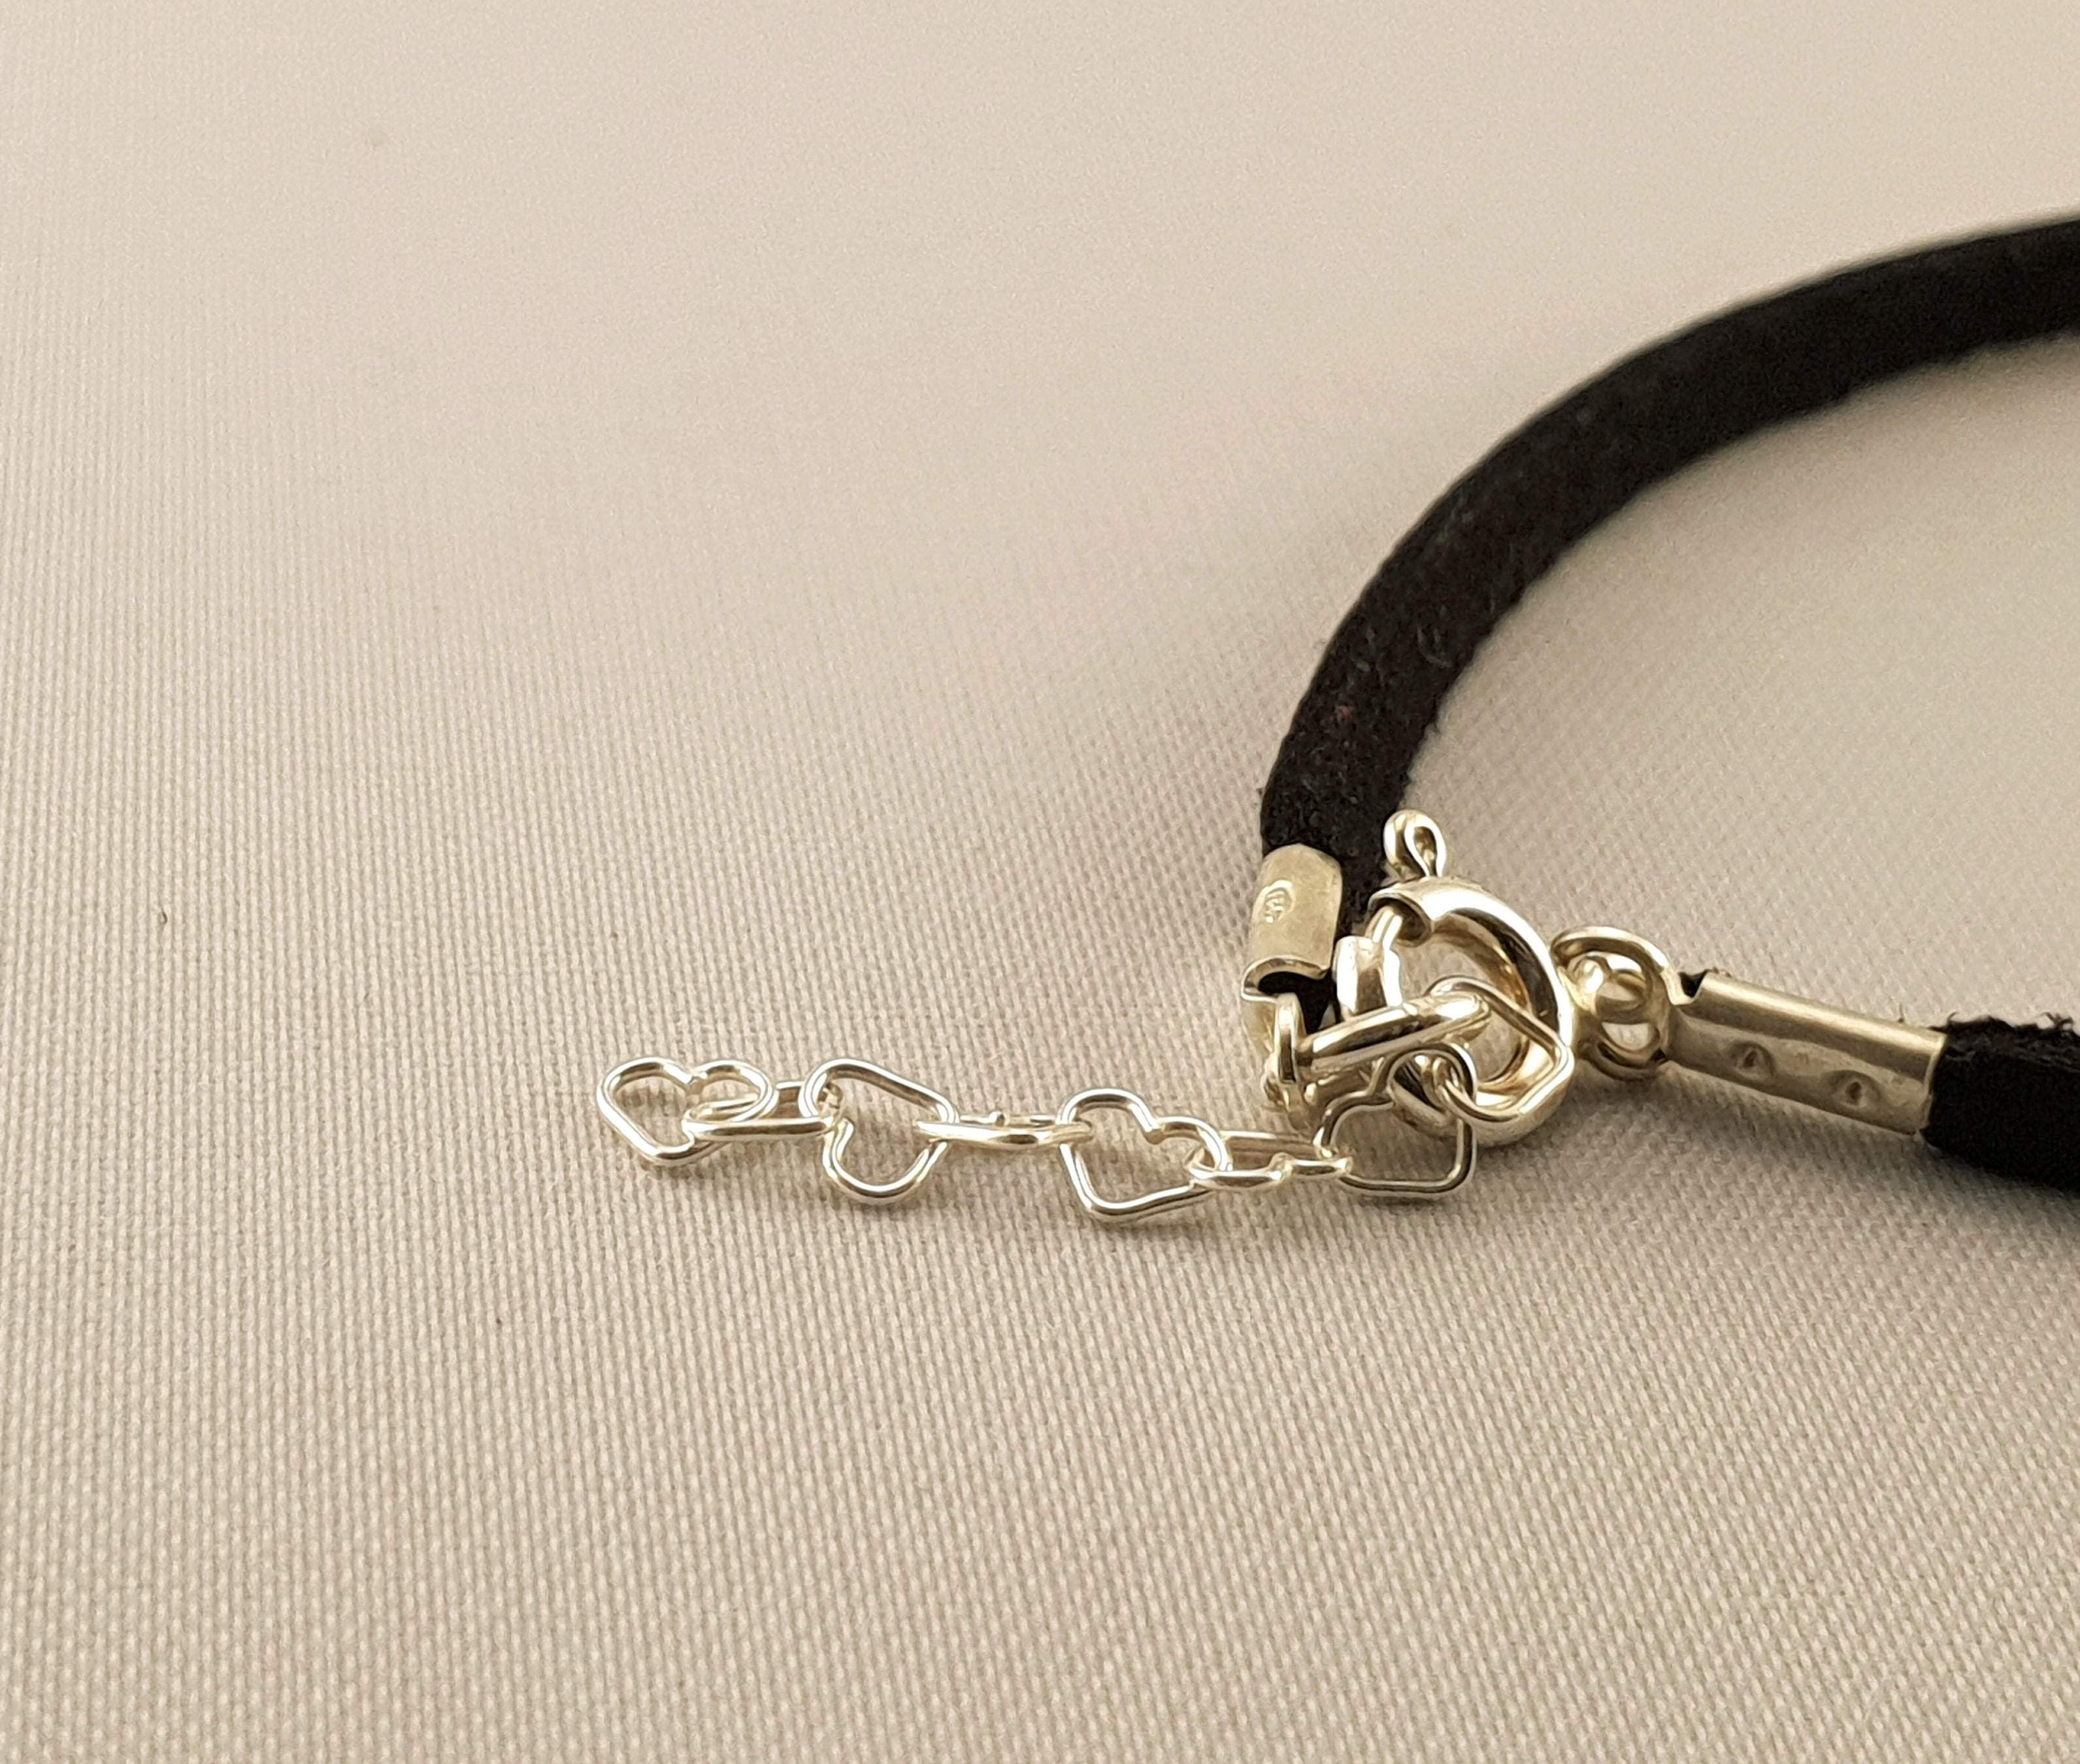 Leather Bracelet - Infinity Silver Heart - By Janine Jewellery